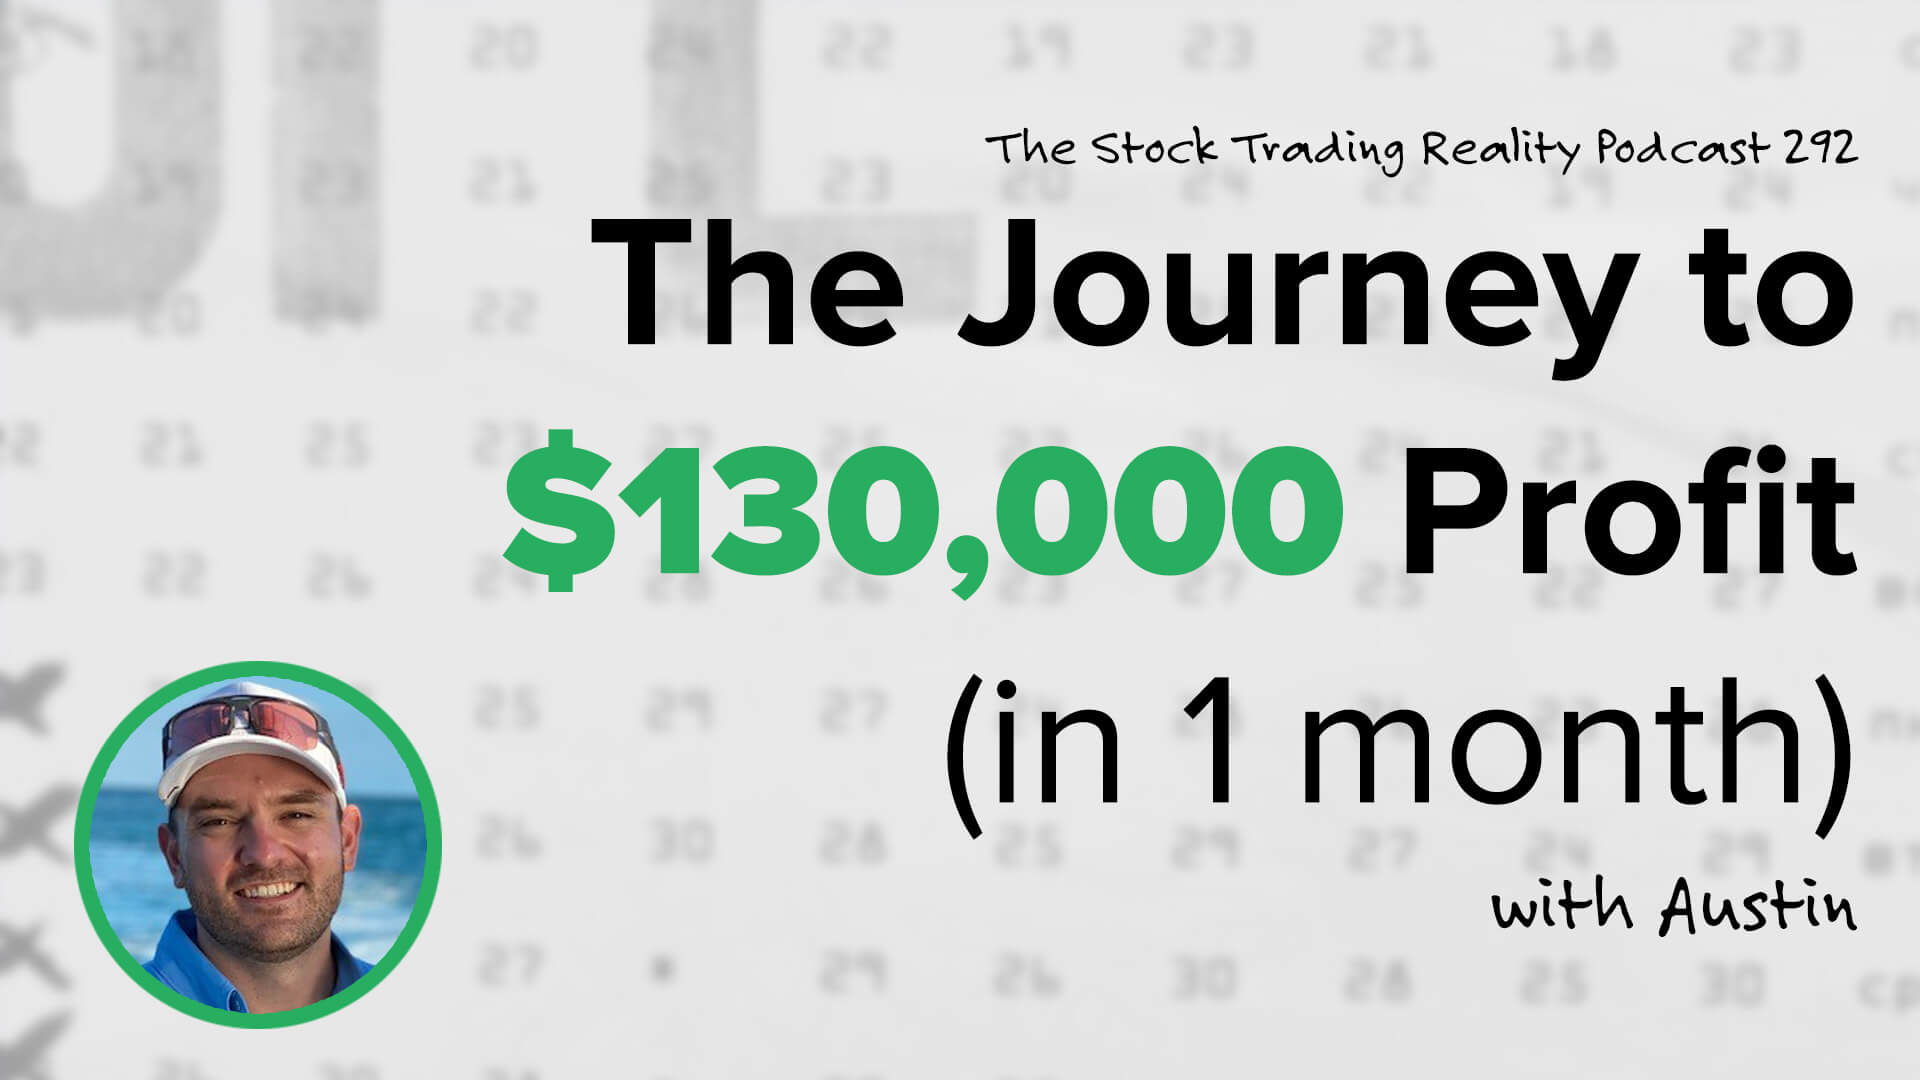 The Journey to $130,000 Profit (in 1 month) | STR 292